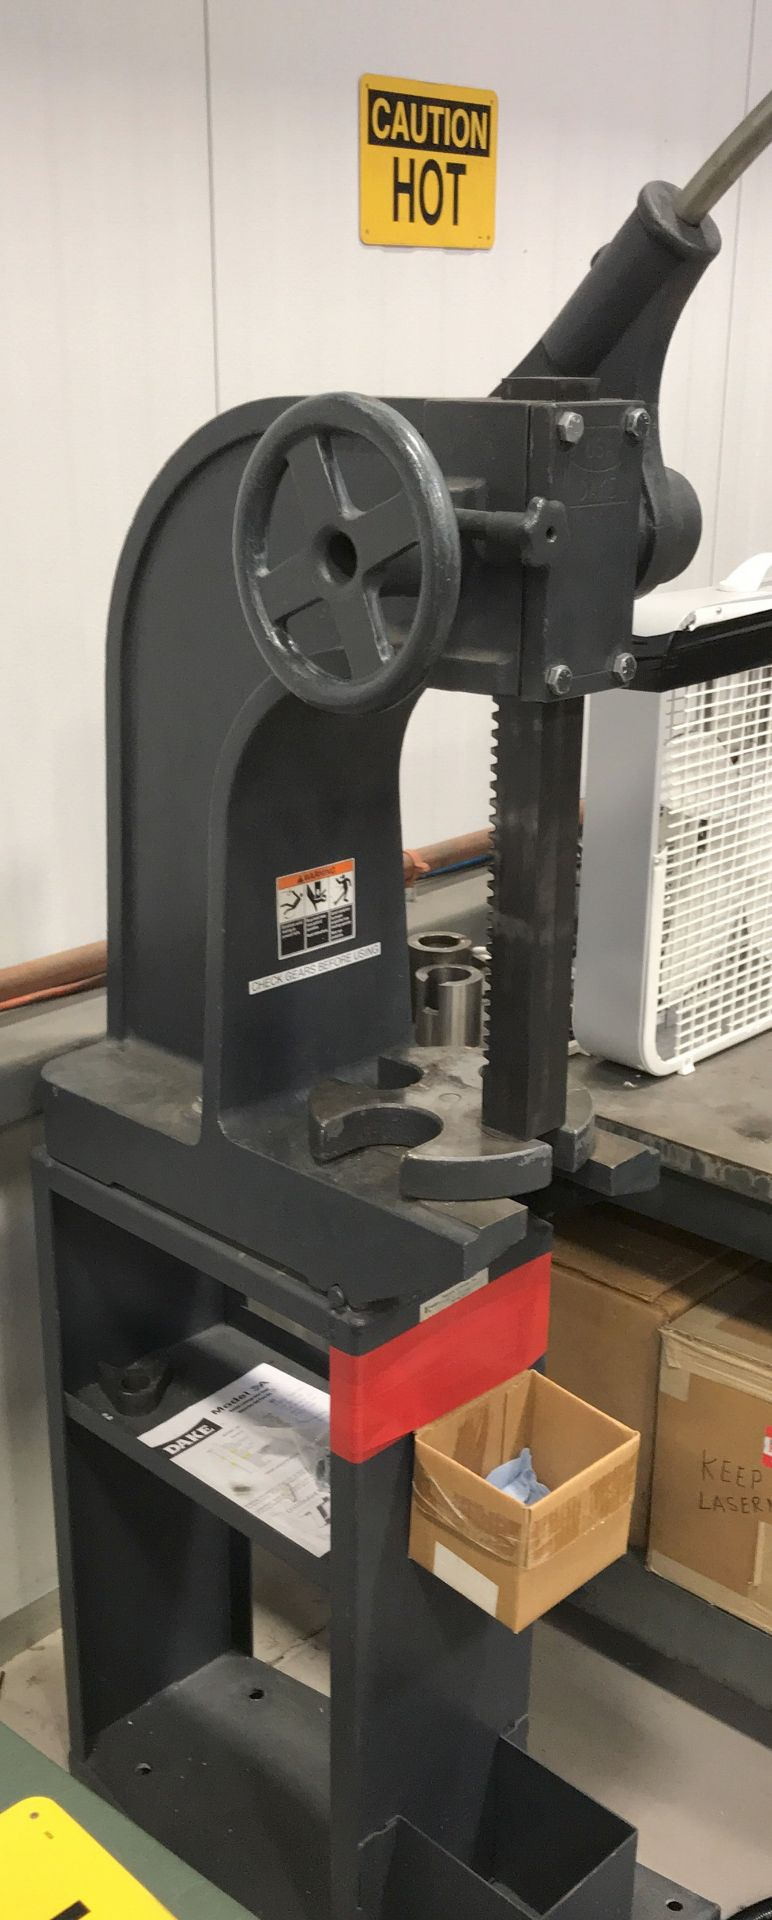 DAKE ARBOR PRESS WITH STAND [RIGGING FEES FOR LOT# 3 - $25 USD PLUS APPLICABLE TAXES]